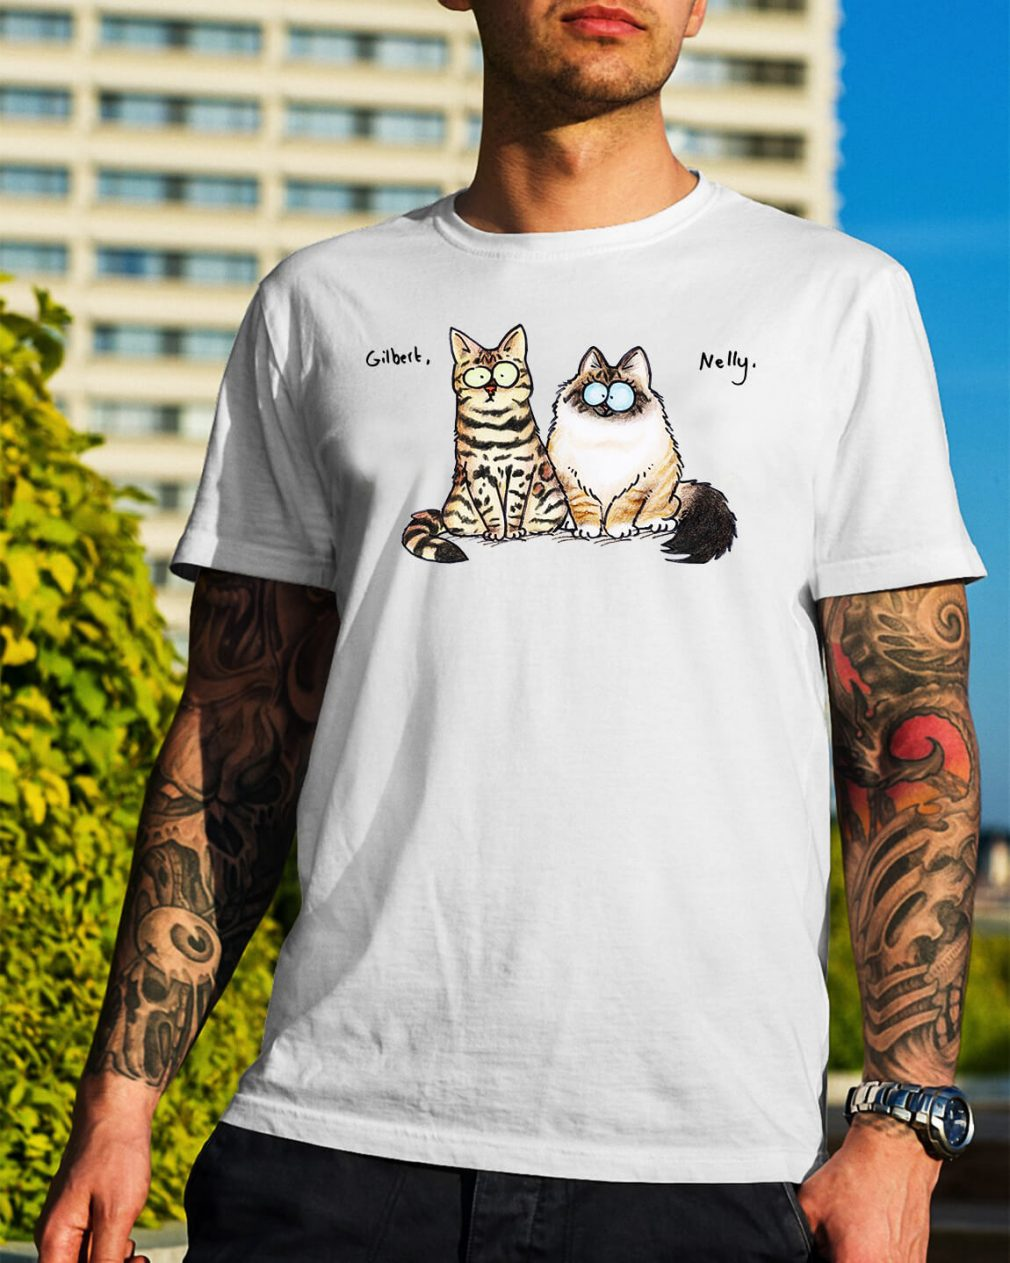 The Cats Nelly and Gilbert shirt